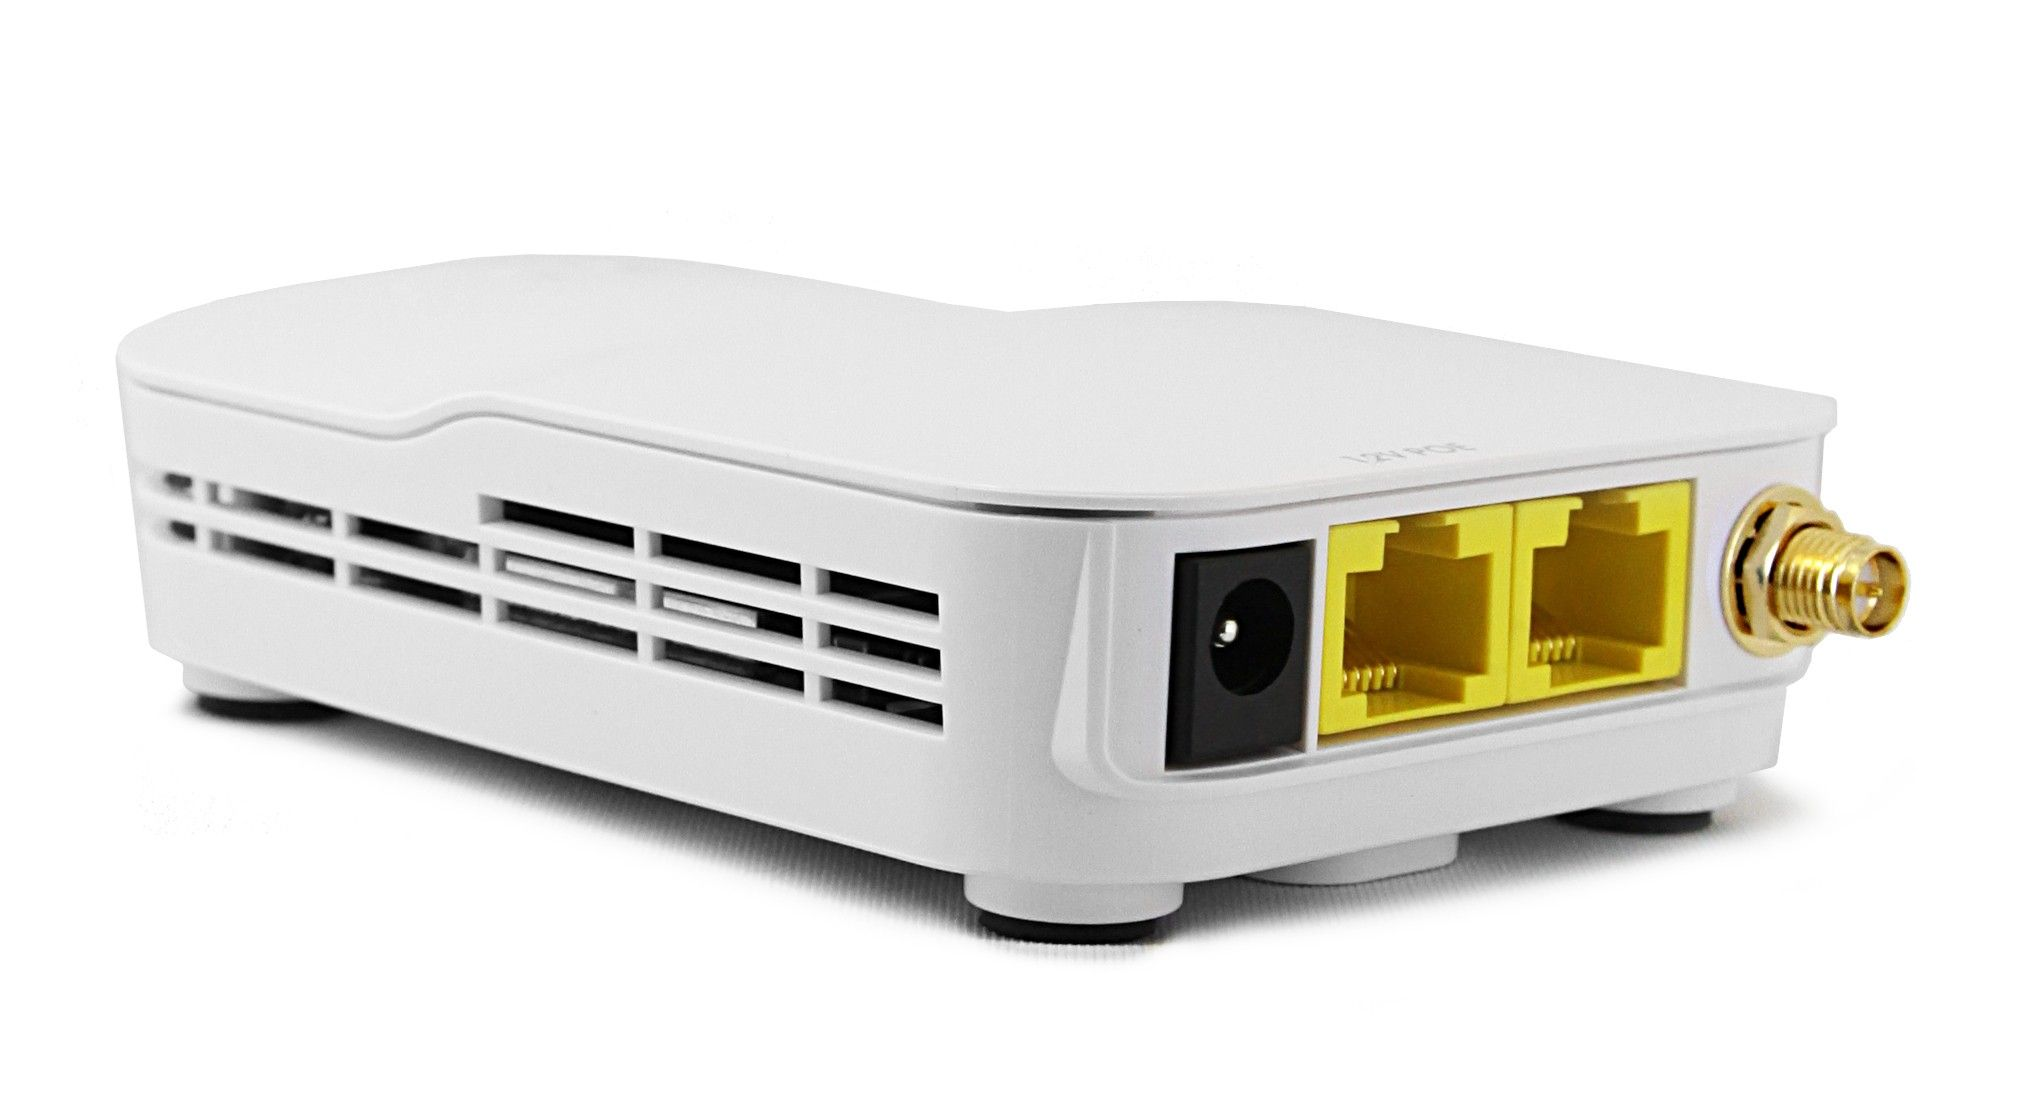 Open Mesh Om2p Mesh Networking Access Point